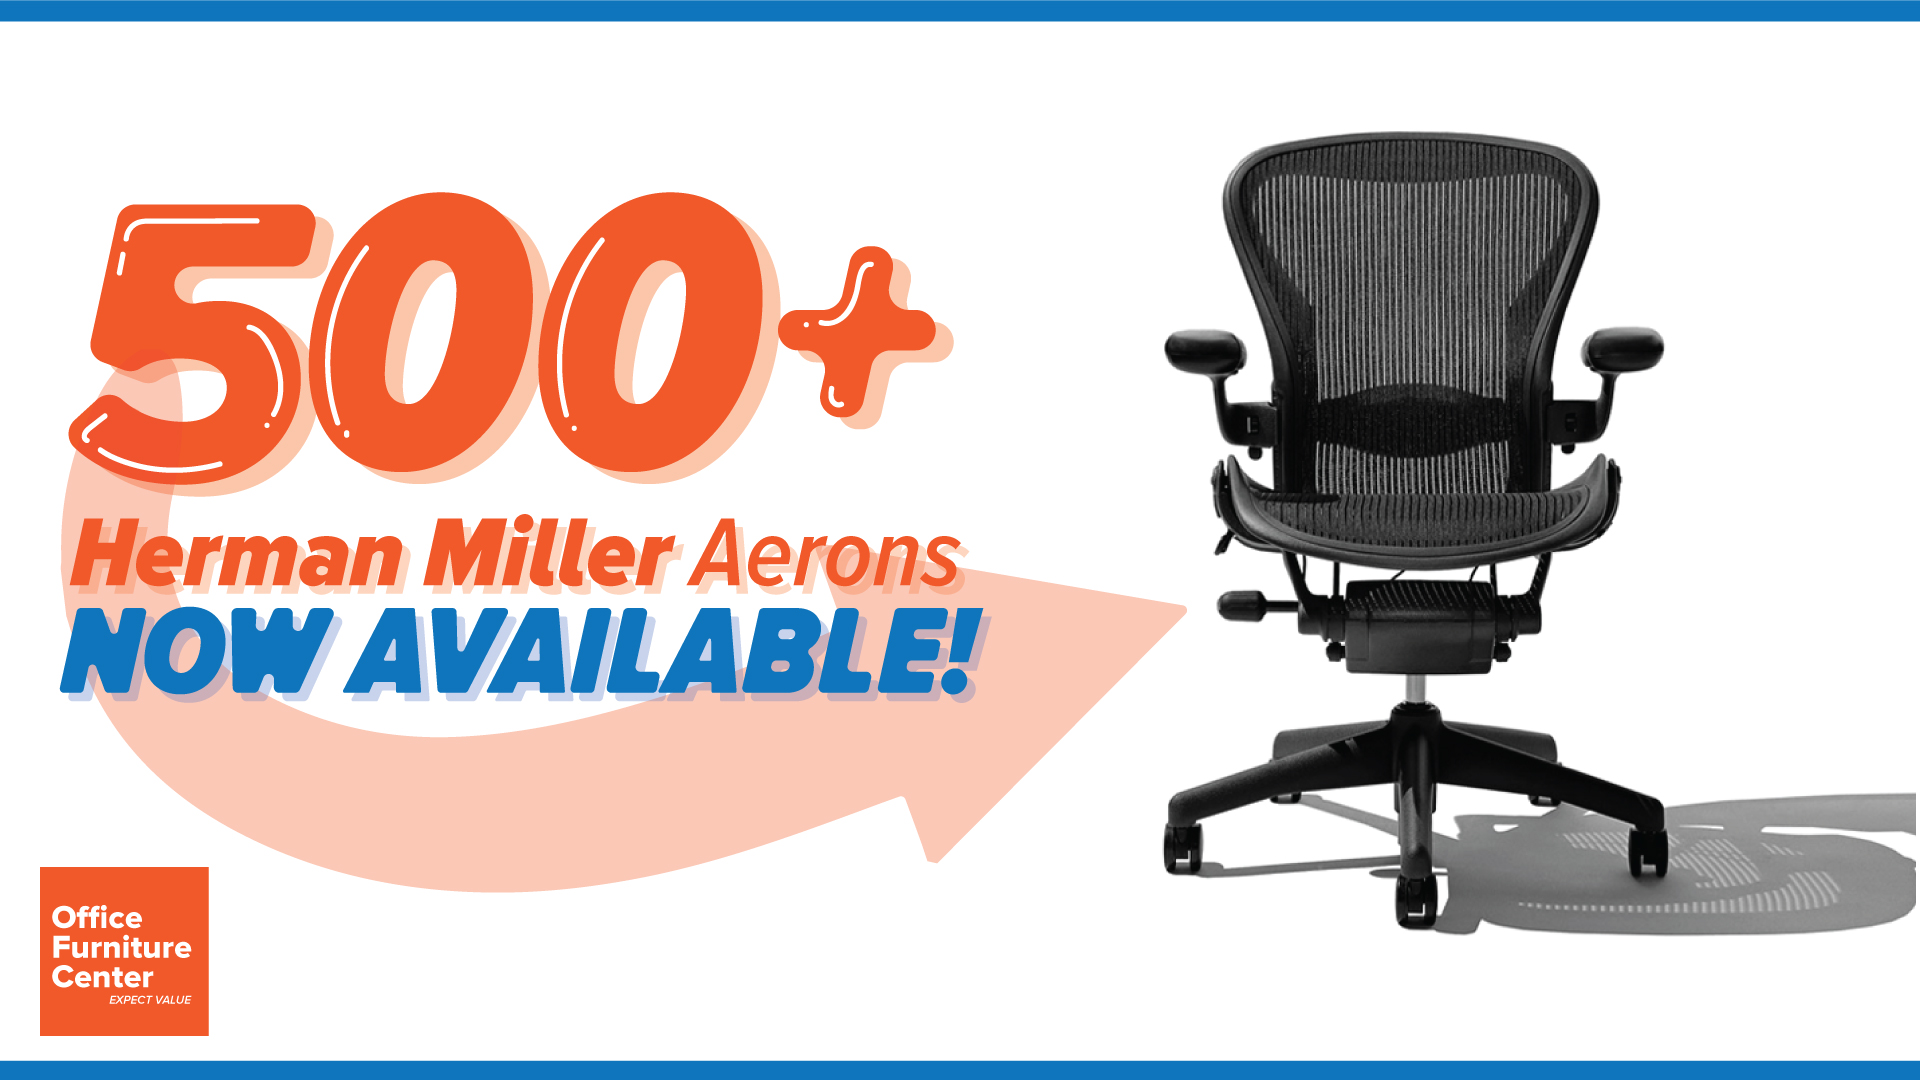 New And Used Office Furniture Chicago | Office Furniture Center